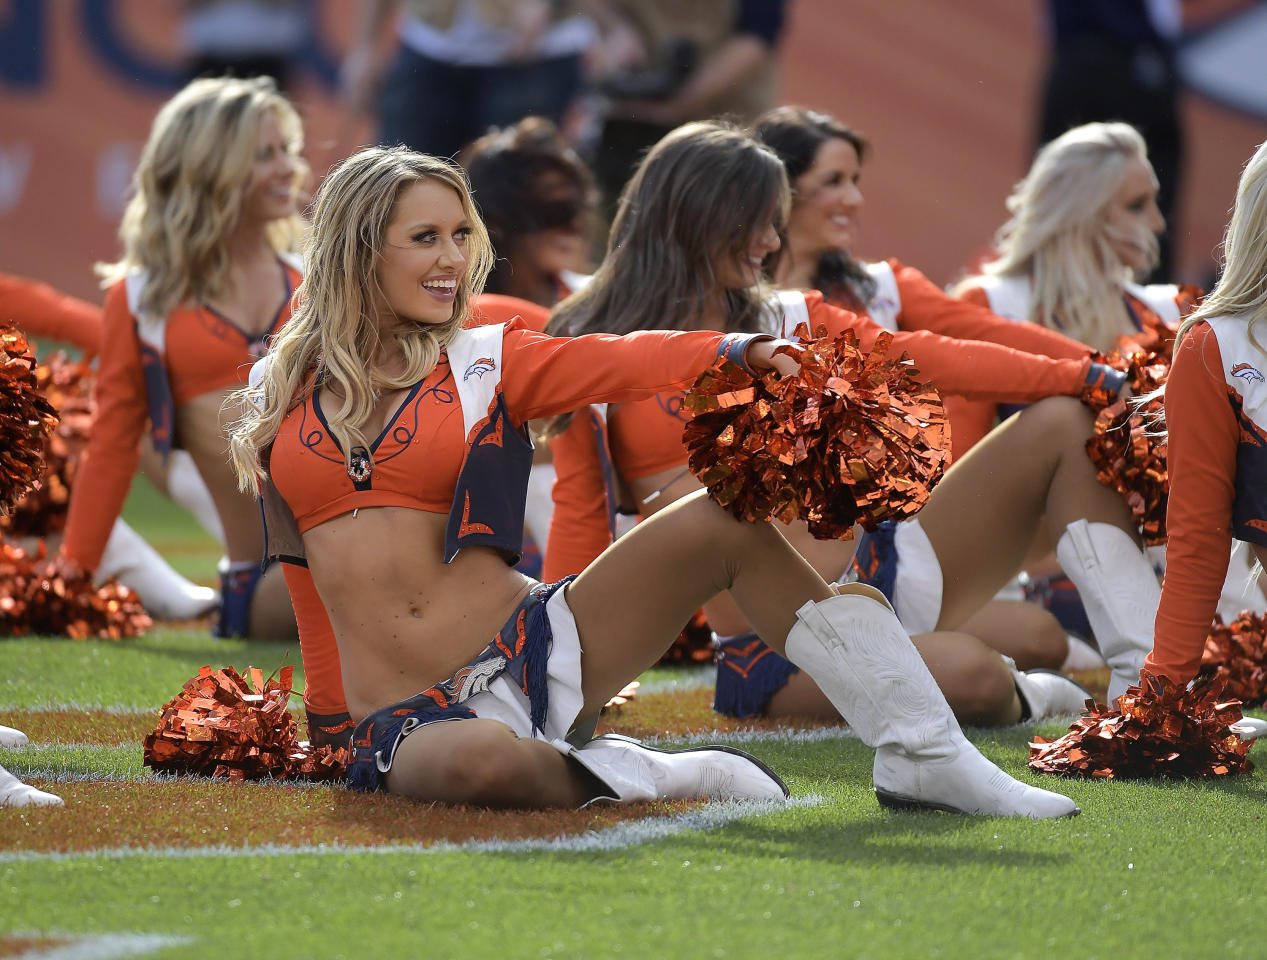 <p>Denver Broncos cheerleaders entertain during the second quarter as the Broncos beat the Dallas Cowboys 42-17 on Sunday, Sept. 17, 2017 at Sports Authority Field at Mile High in Denver, Colo. (Max Faulkner/Fort Worth Star-Telegram/TNS via Getty Images) </p>